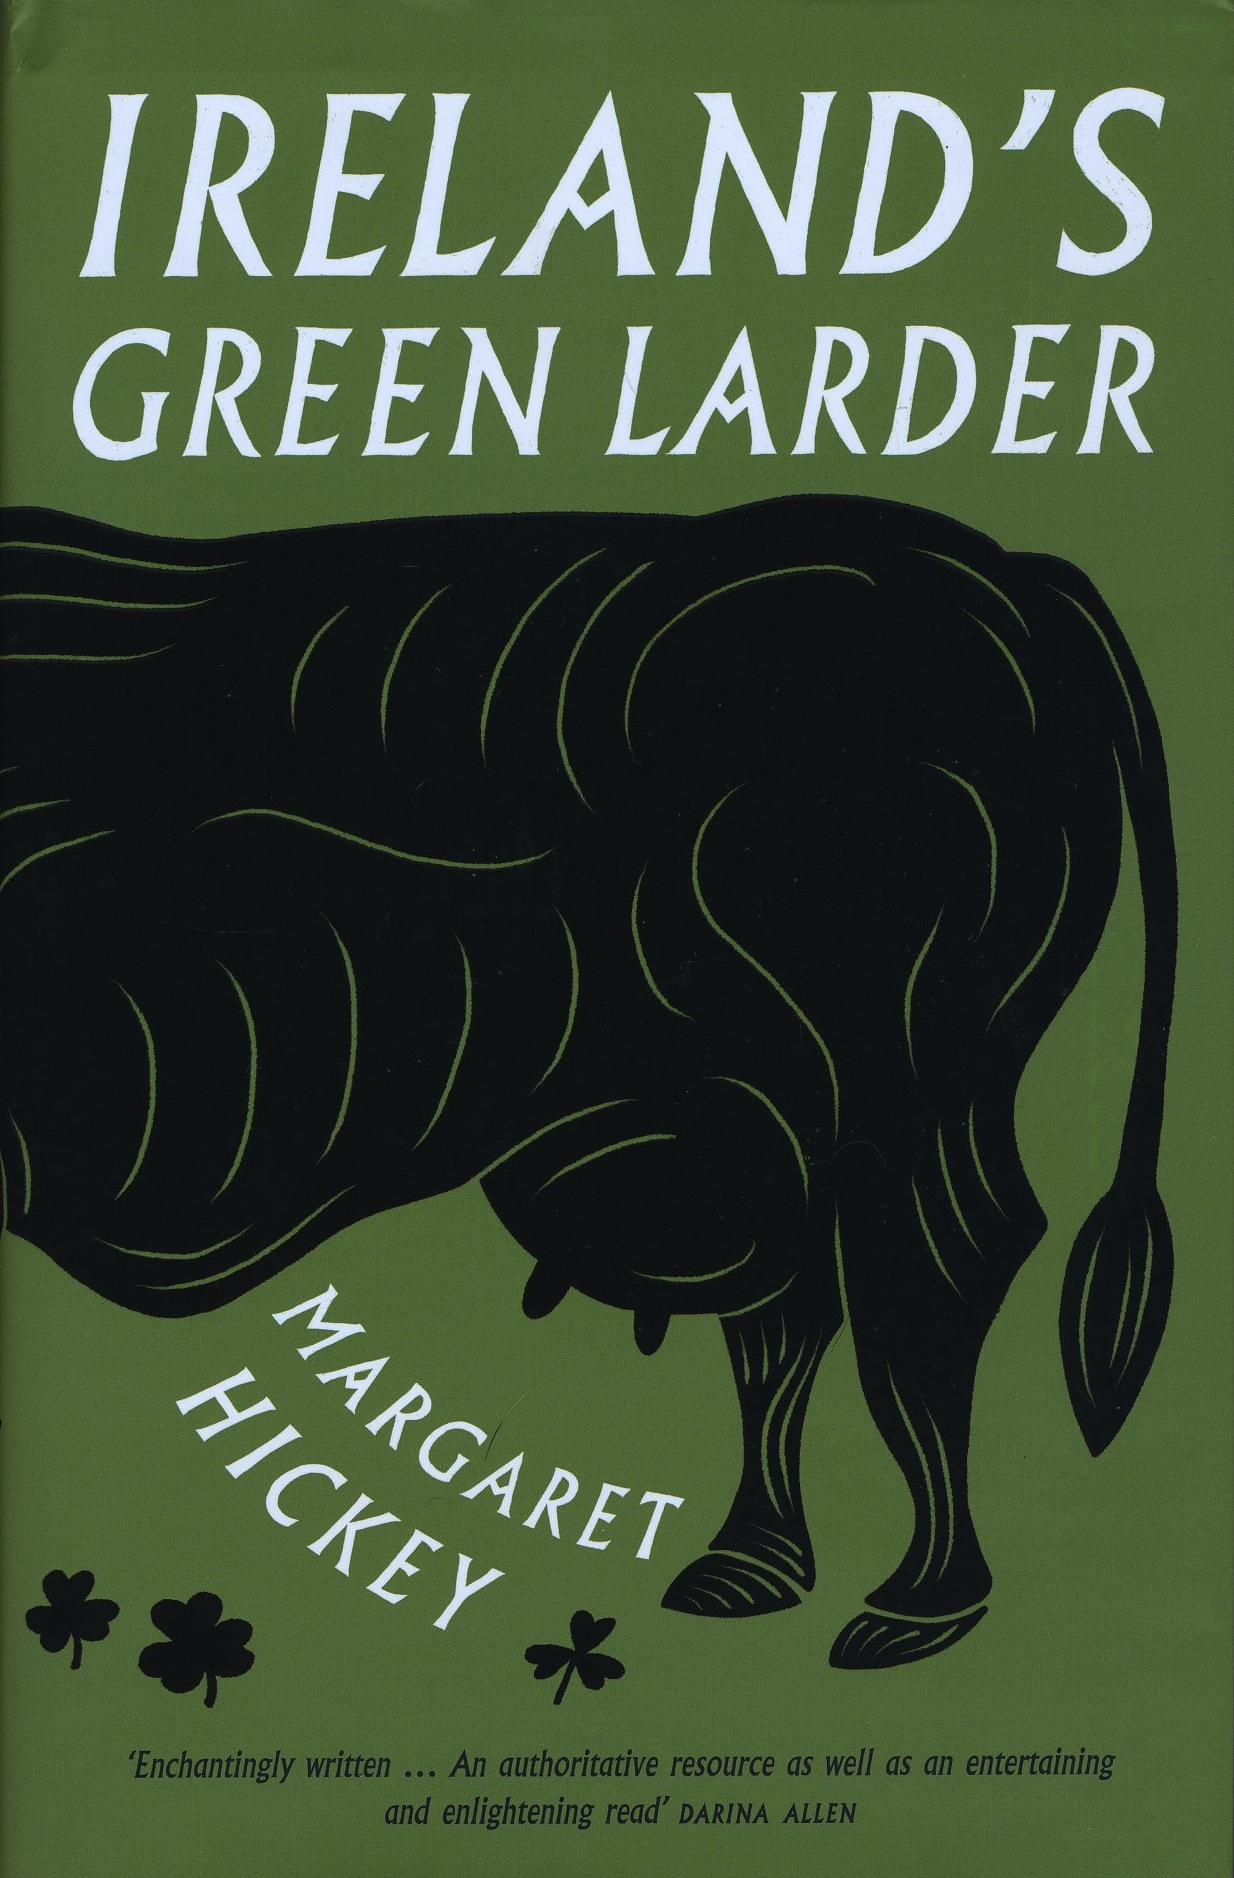 Ireland�s Green Larder - now available in paperback